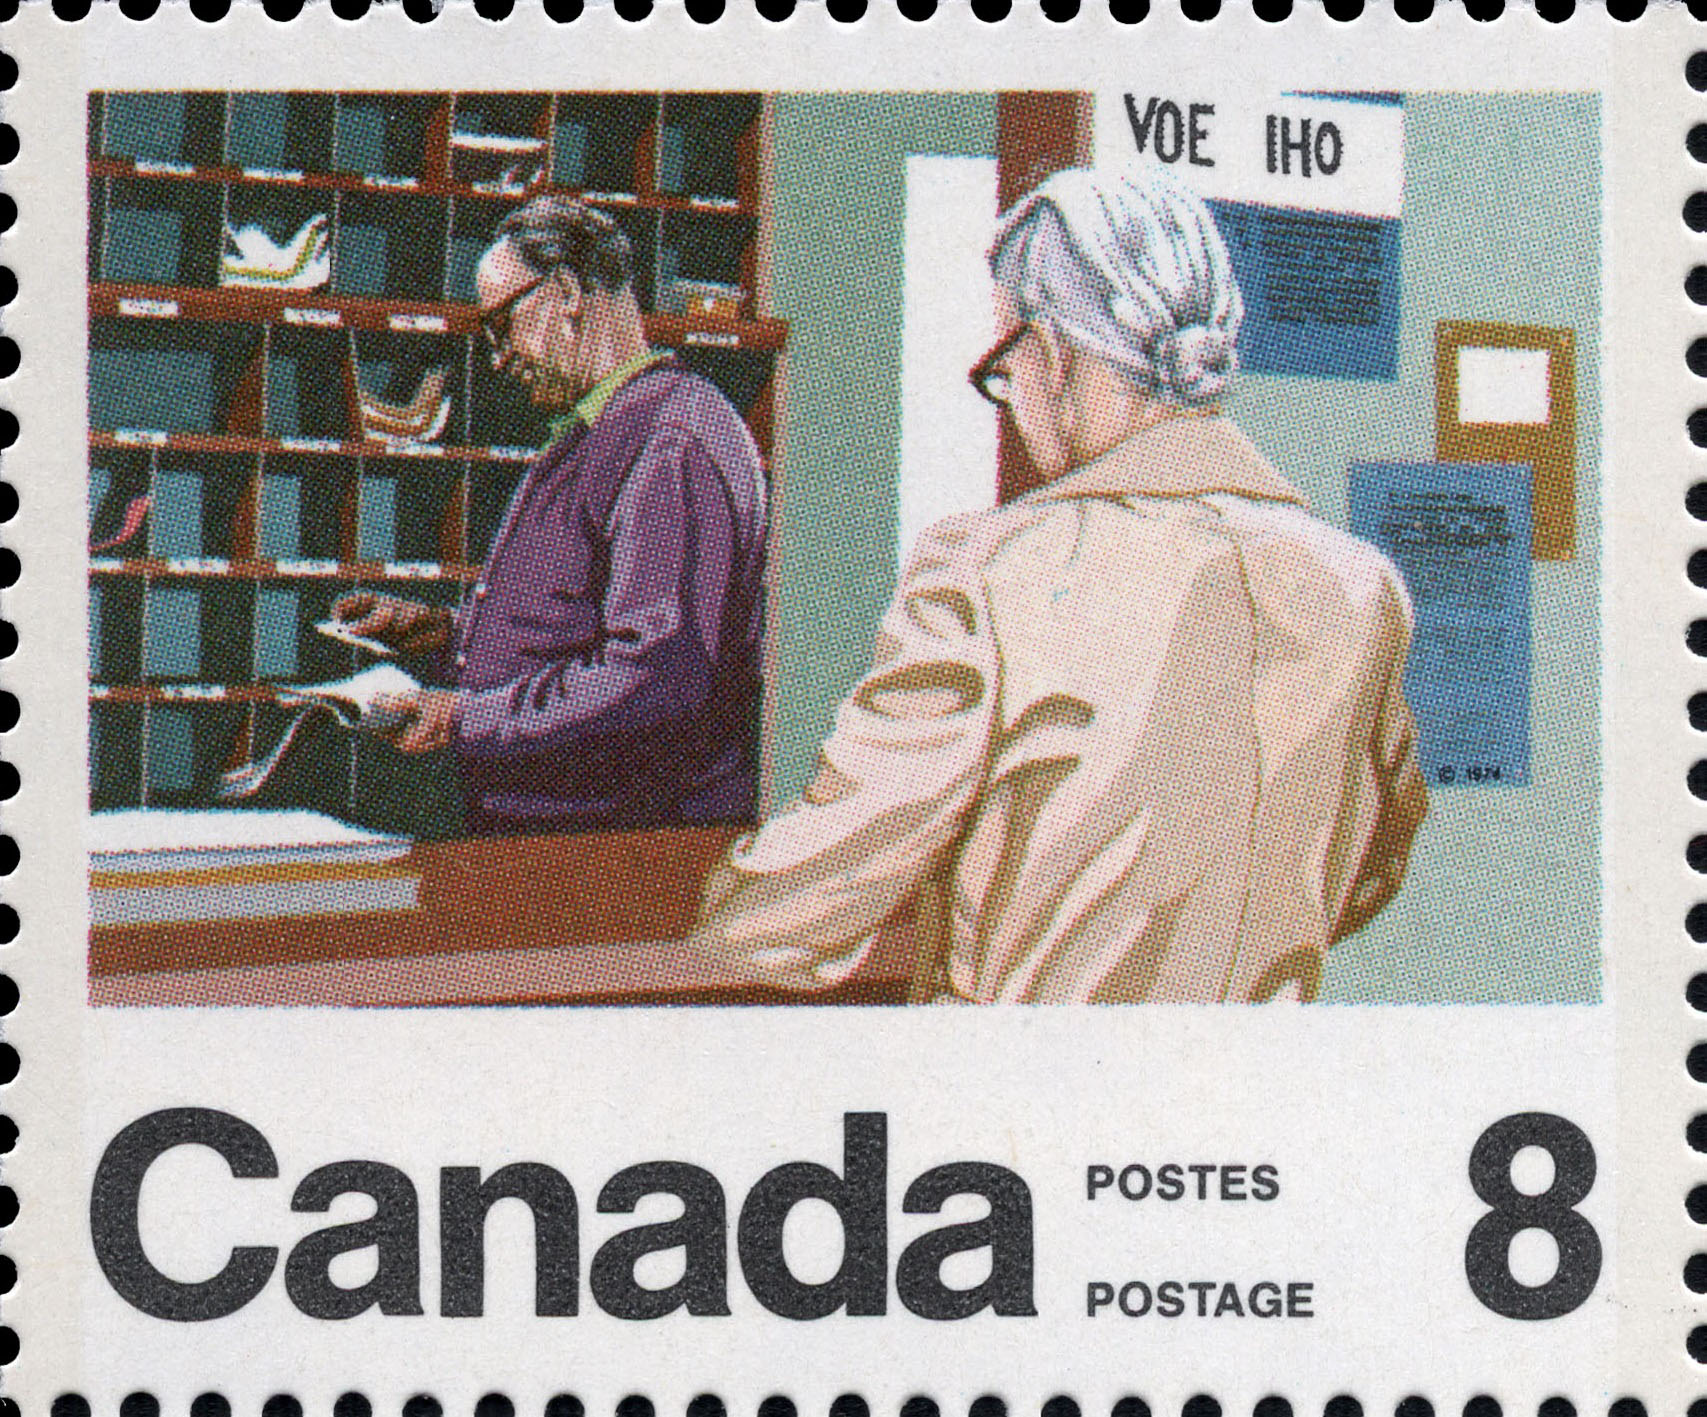 Postmaster Canada Postage Stamp